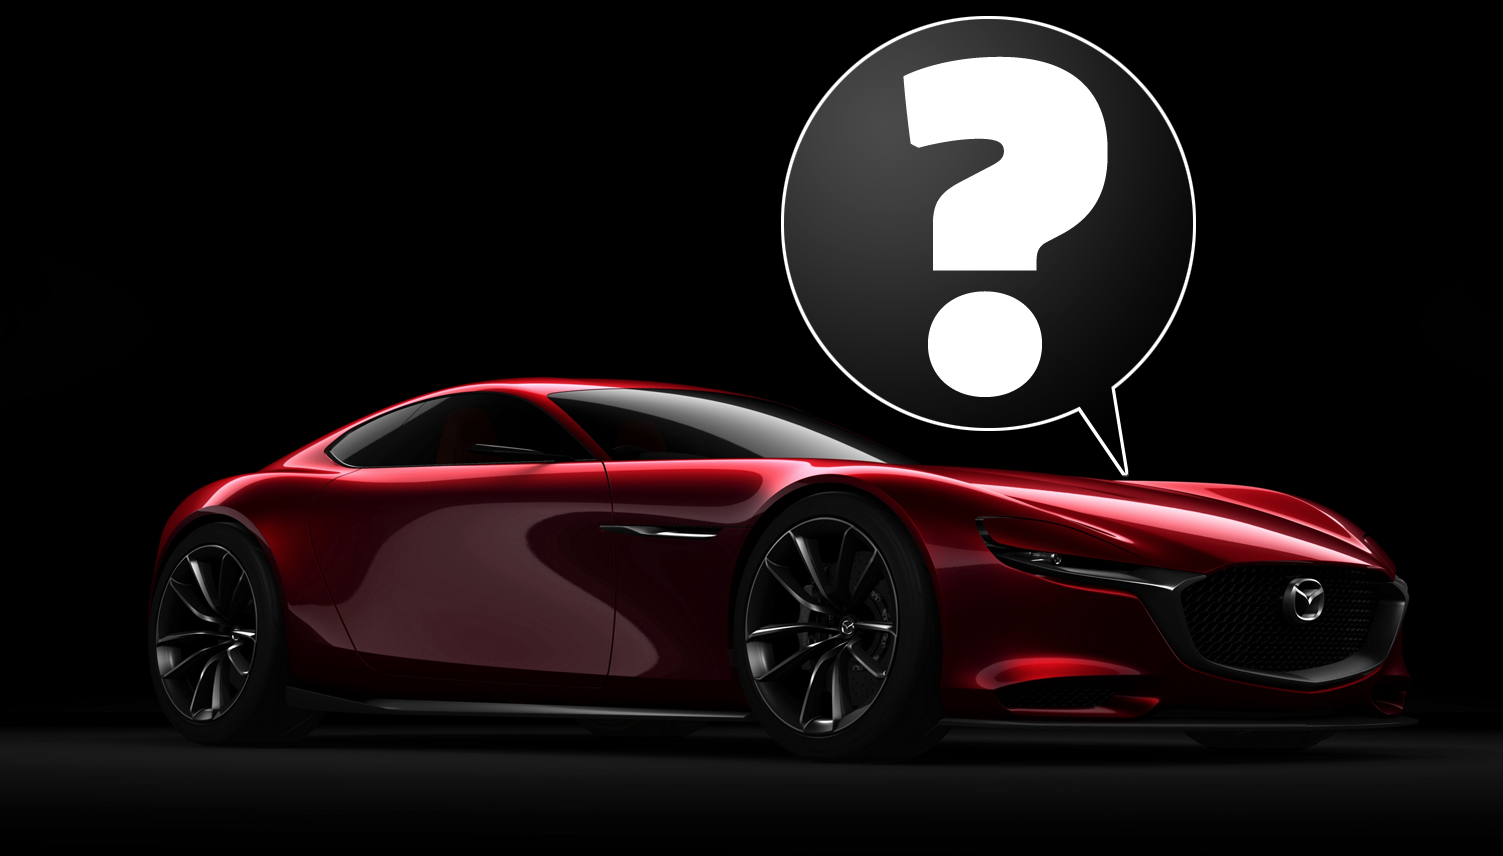 Let Me Tell You About A Strange Rumour We Just Heard About A Future Mazda RX-9's Engine